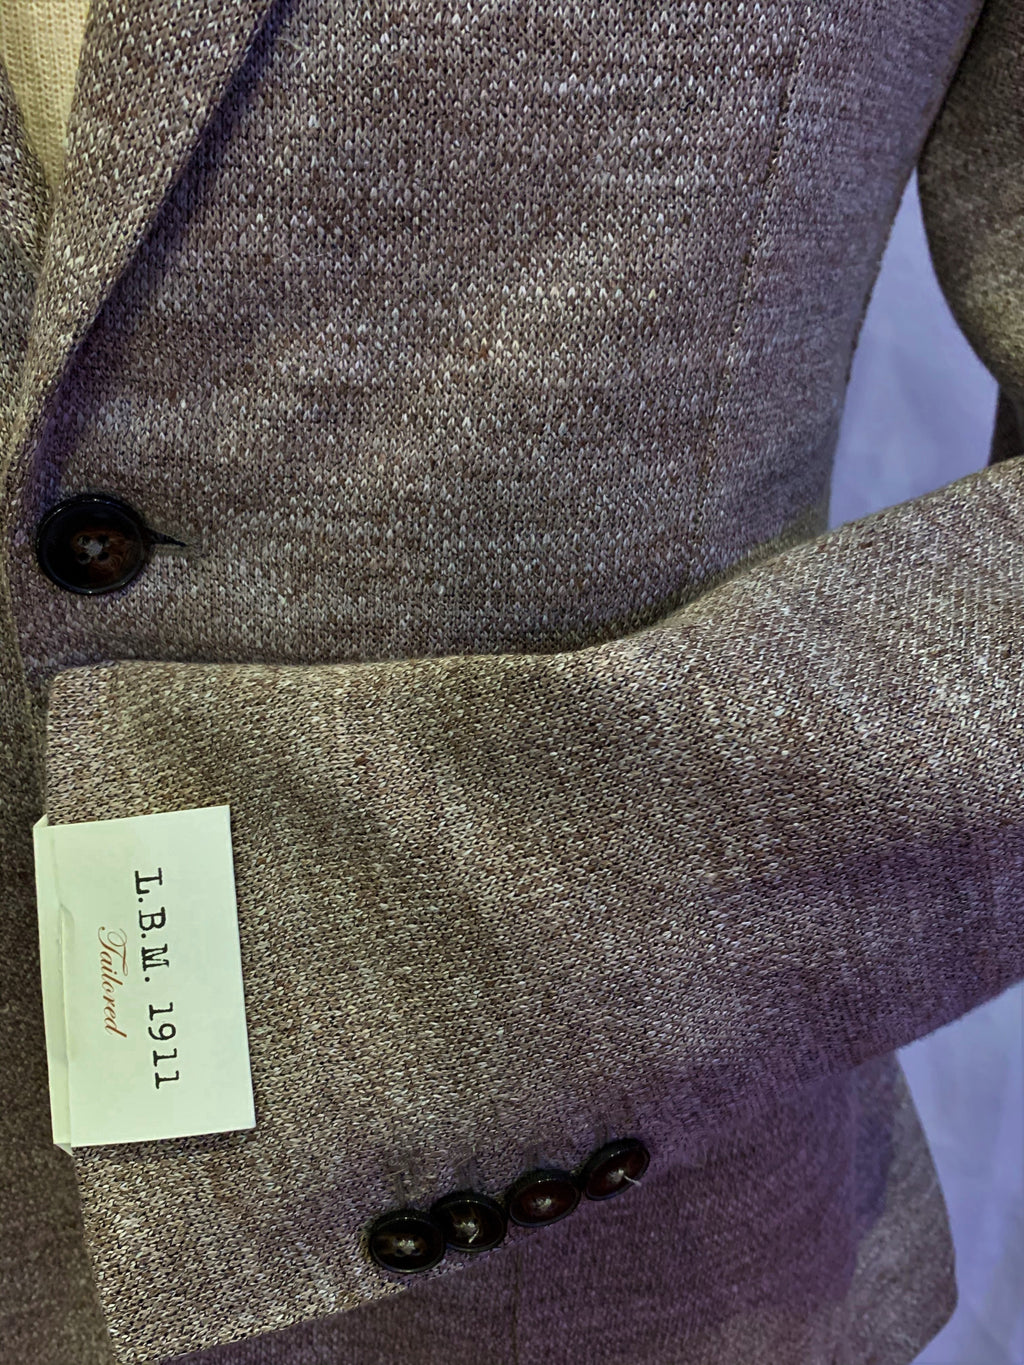 LBM Knit Sport Jacket: Taupe Slim Fit, with Unlined Body & Soft Shoulder